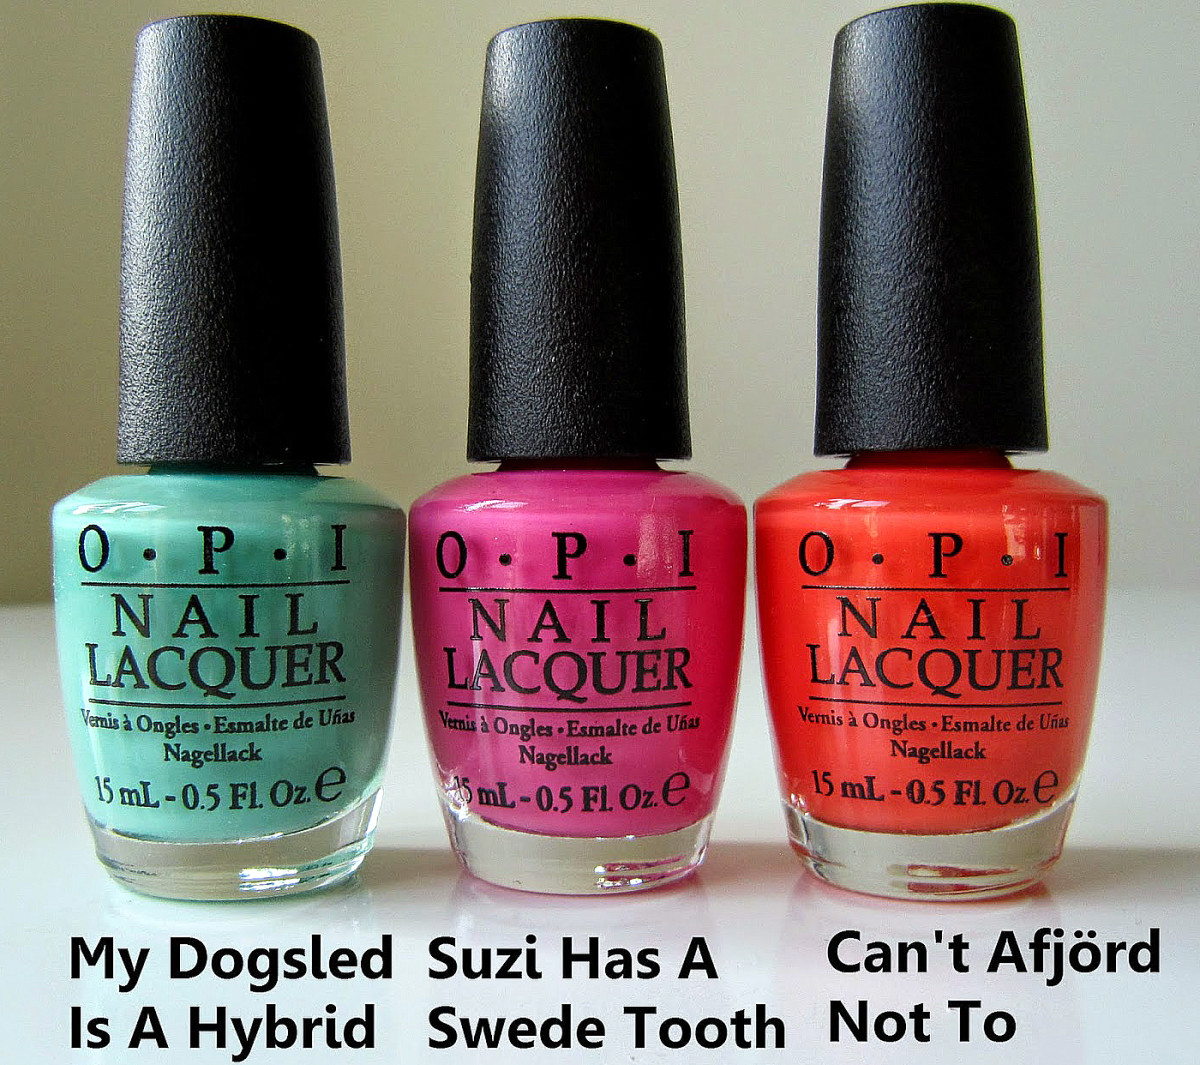 OPI Nordic collection_Fall Winter 2014_My Dogsled is a Hybrid_Suzi Has a Swede Tooth_Can't Afjord Not To